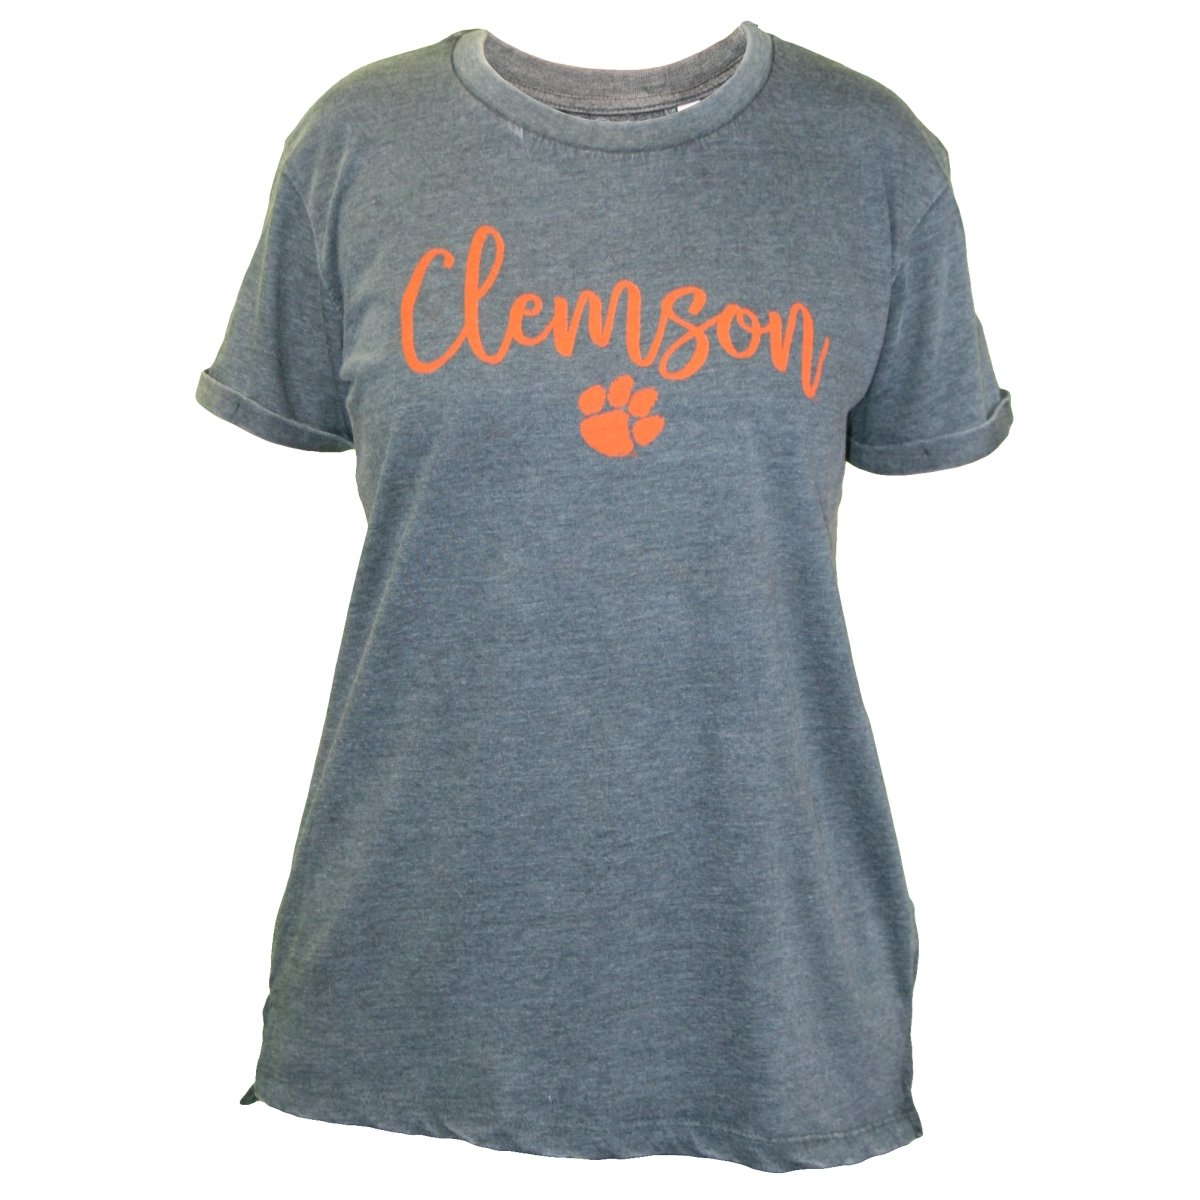 Vintage Clemson Script Over Paw Tee - Mr. Knickerbocker